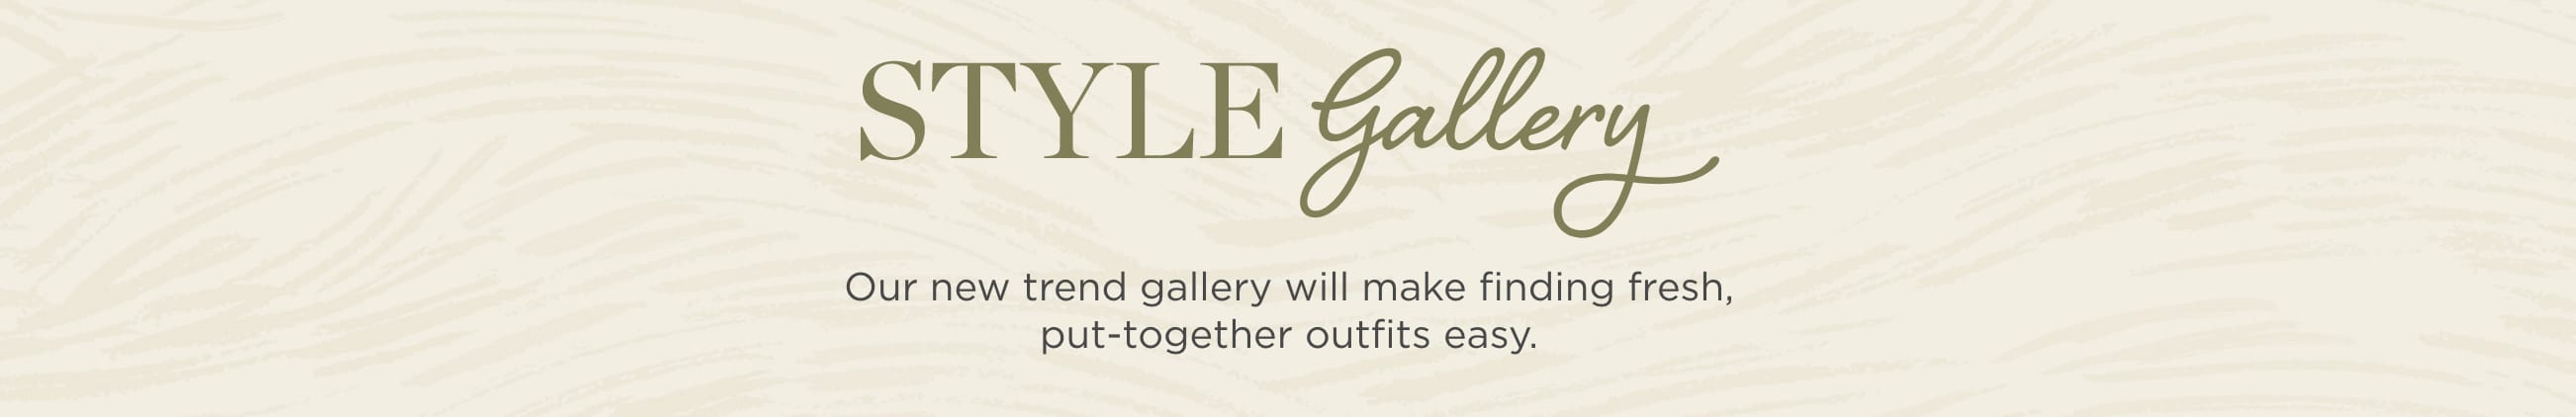 Style Gallery. Our new trend gallery will make finding fresh, put-together outfits easy..